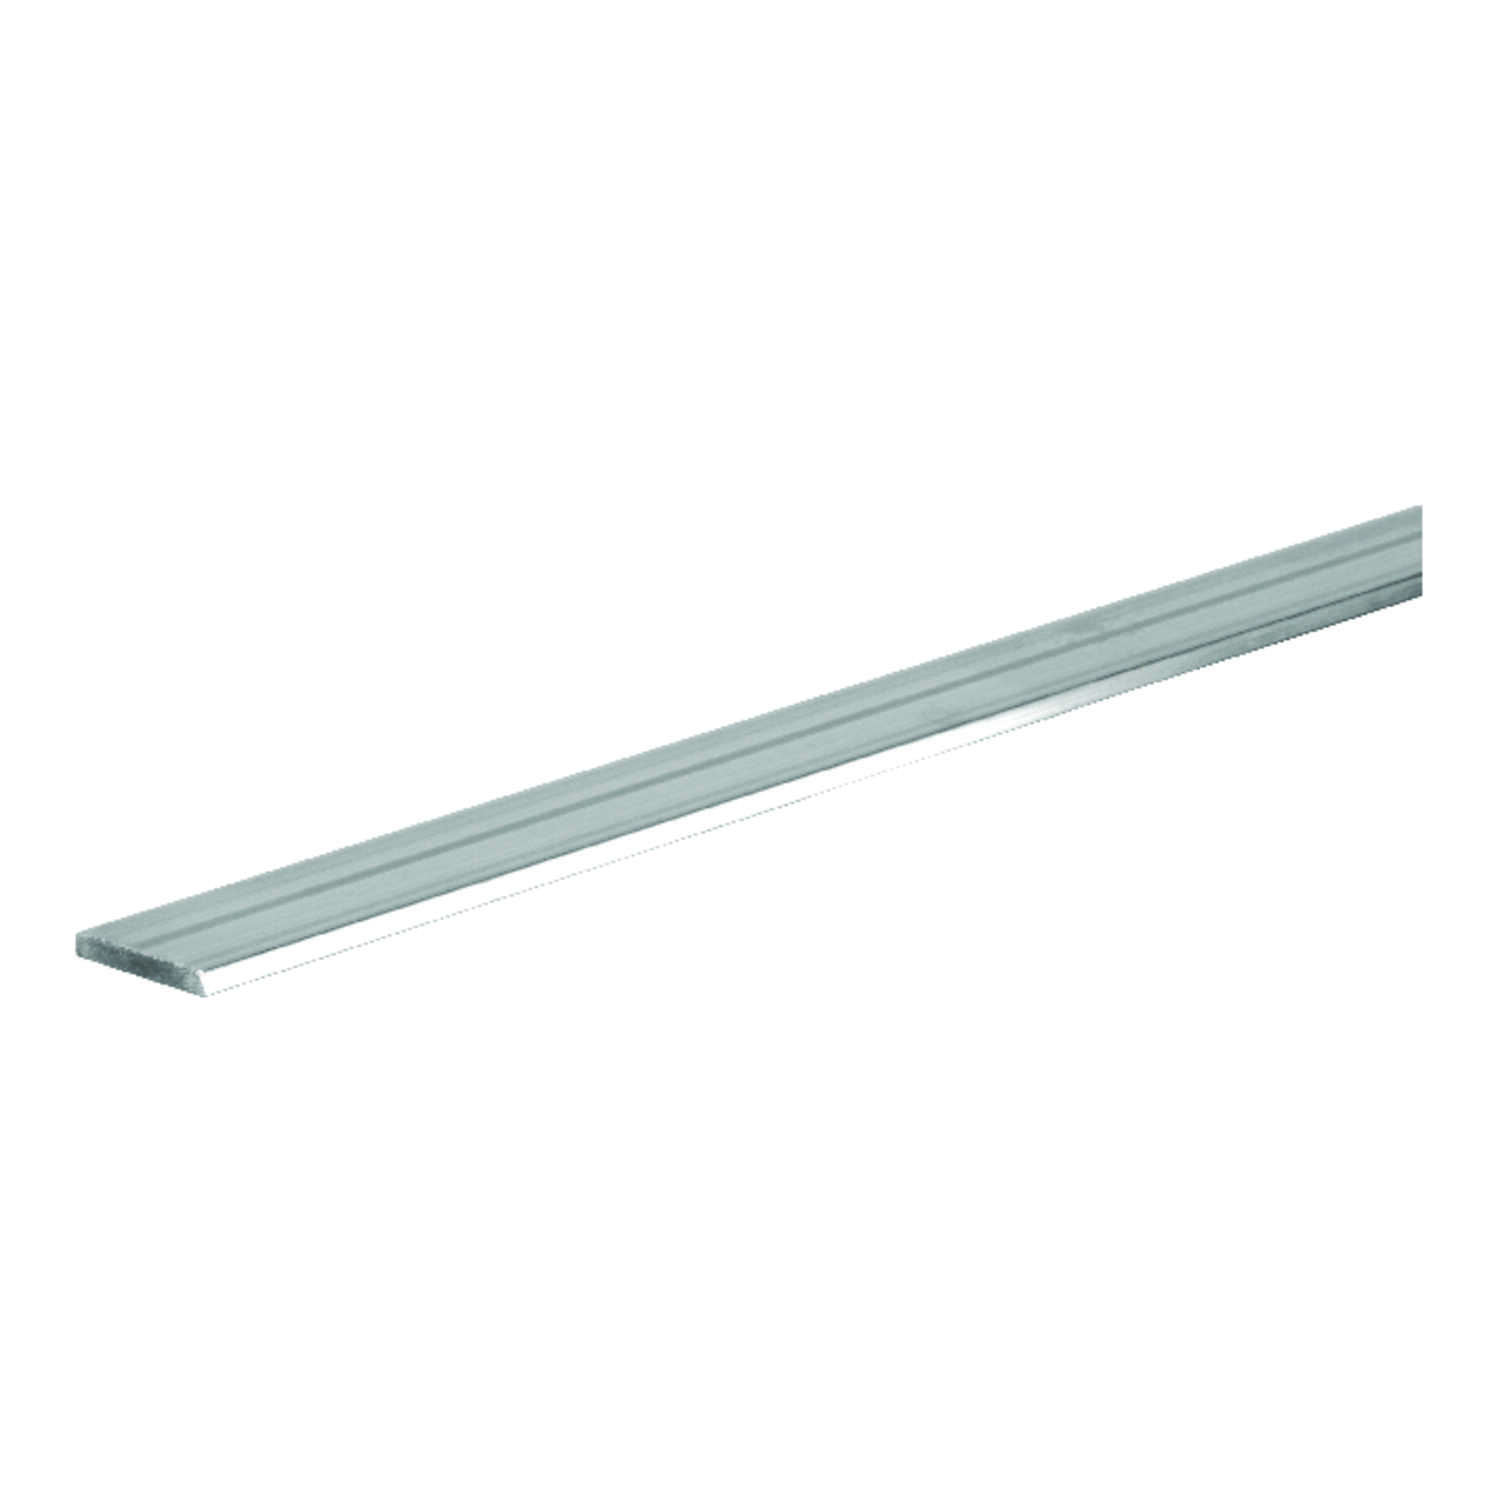 Boltmaster  0.0625 in.  x 1 in. W x 3 ft. L Weldable Aluminum Flat Bar  1 pk